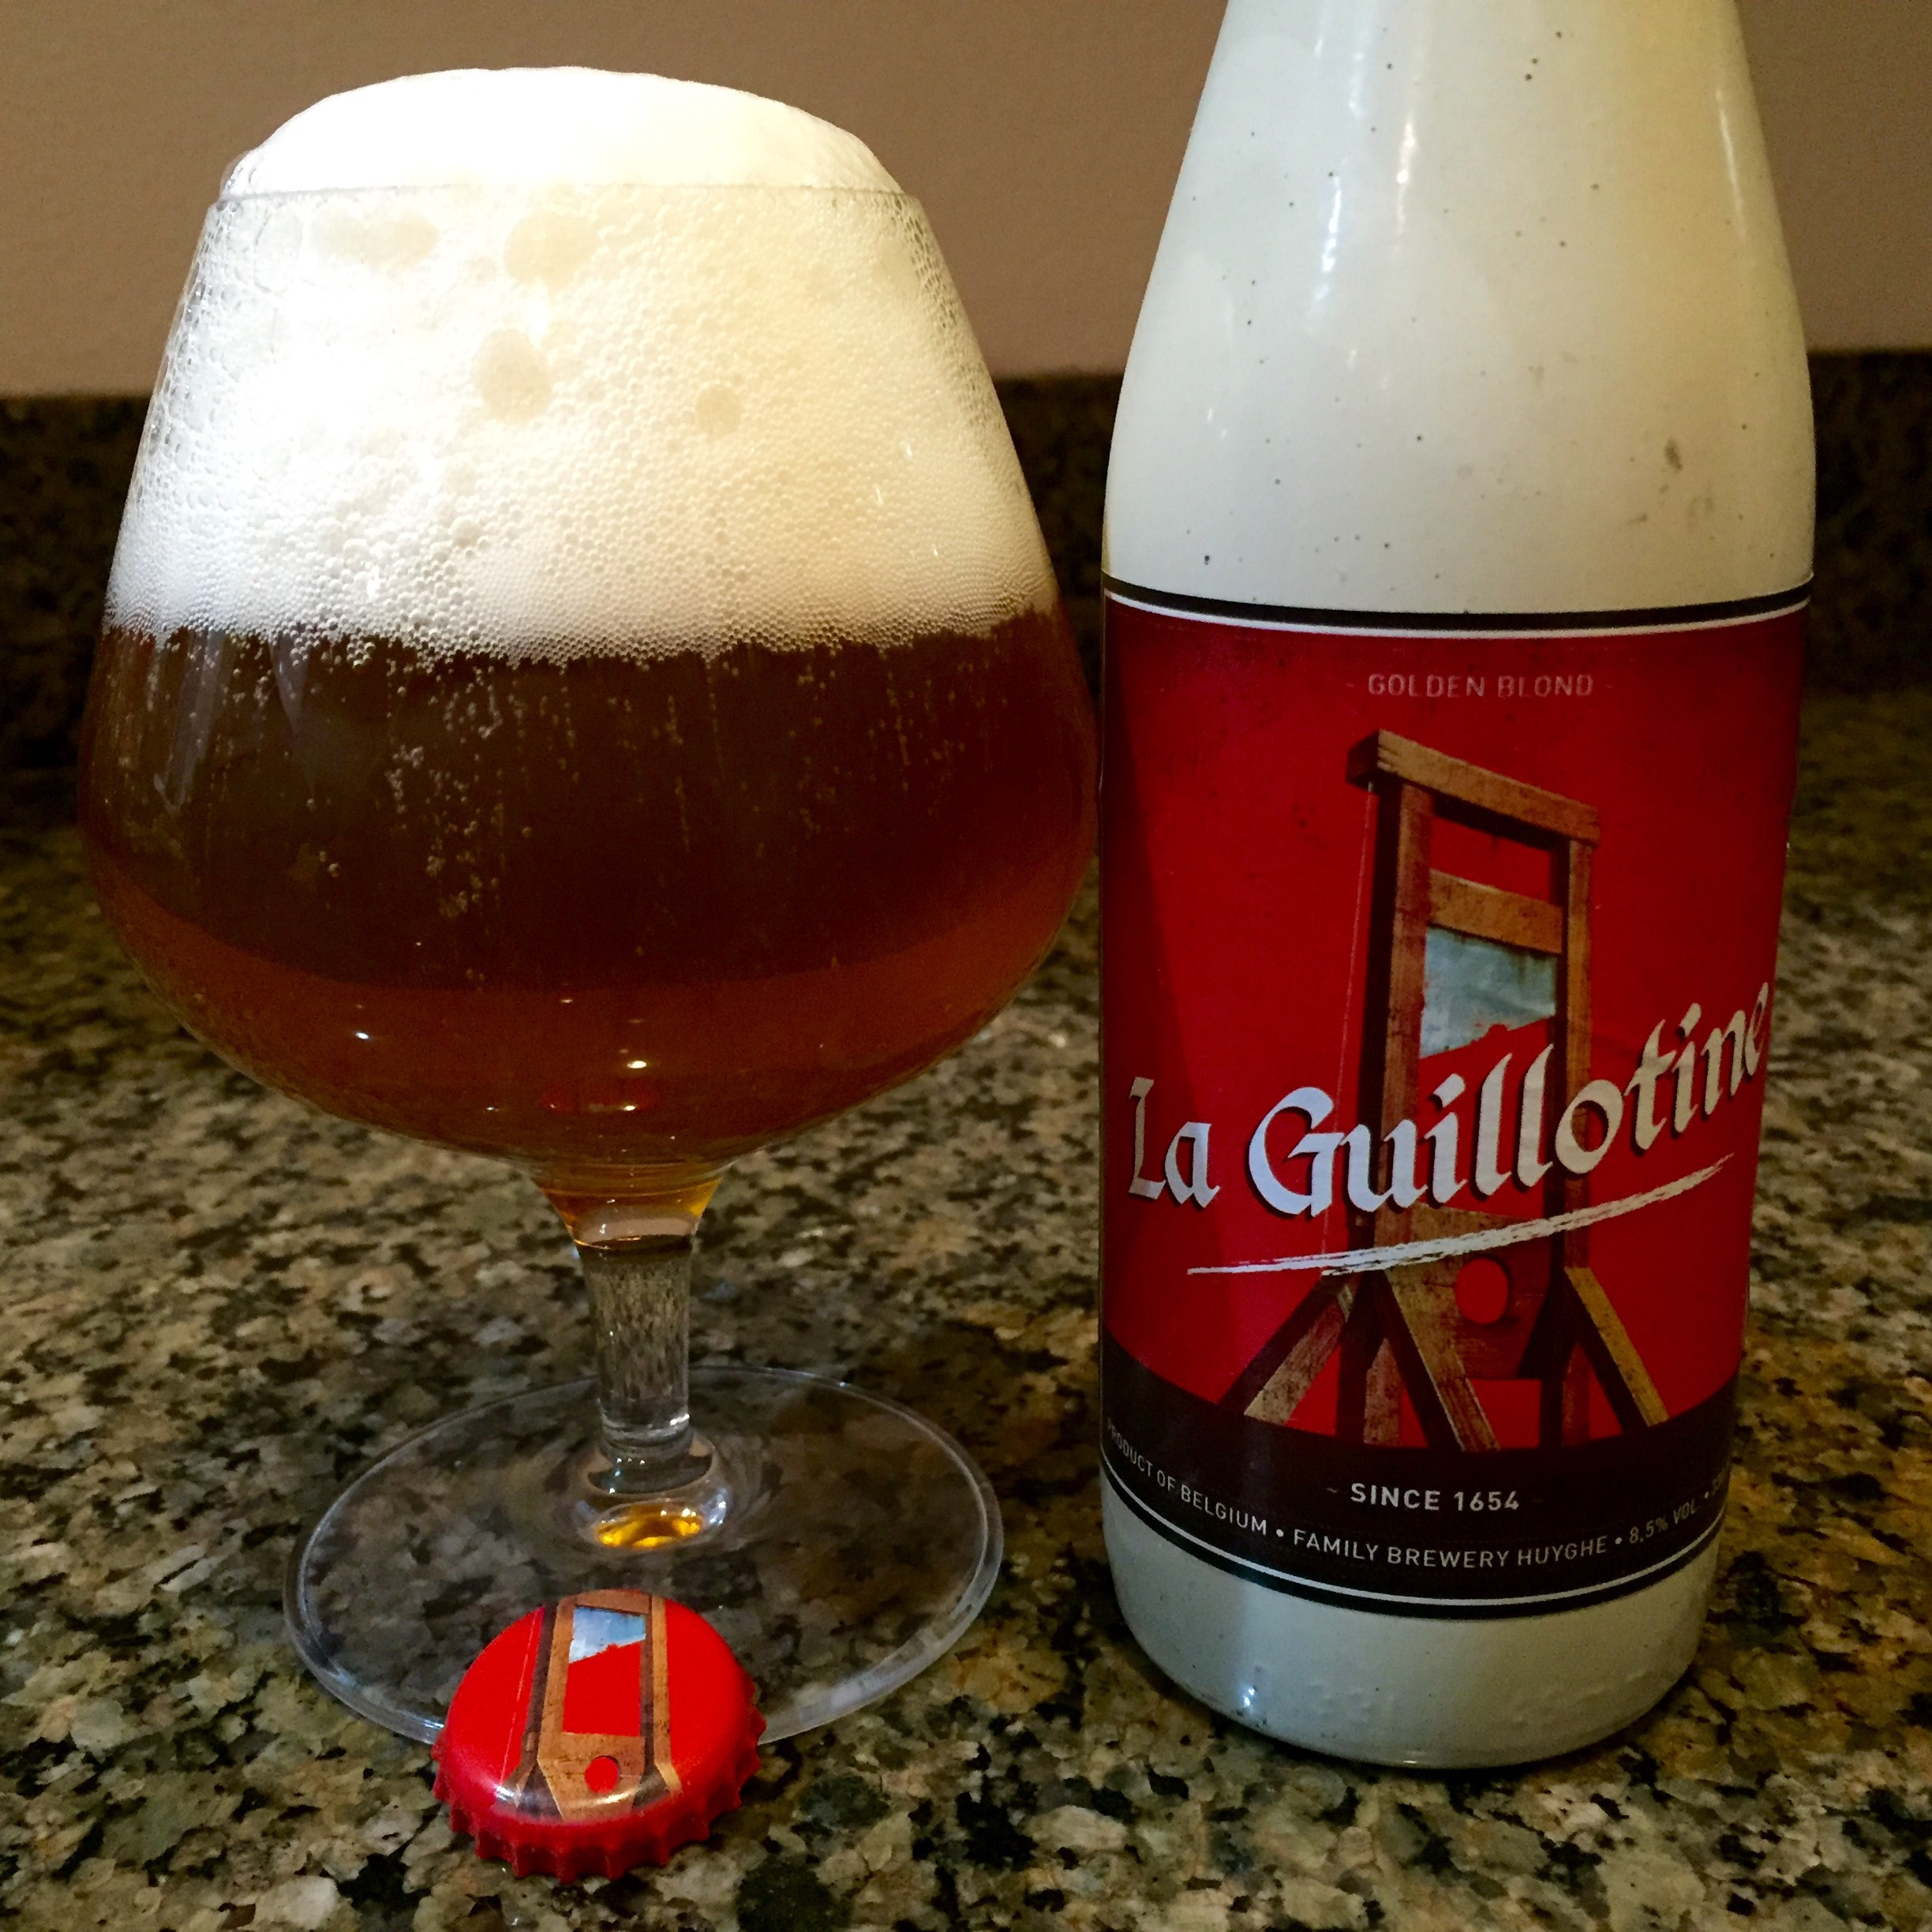 La Guillotine by Brouwerij Huyghe